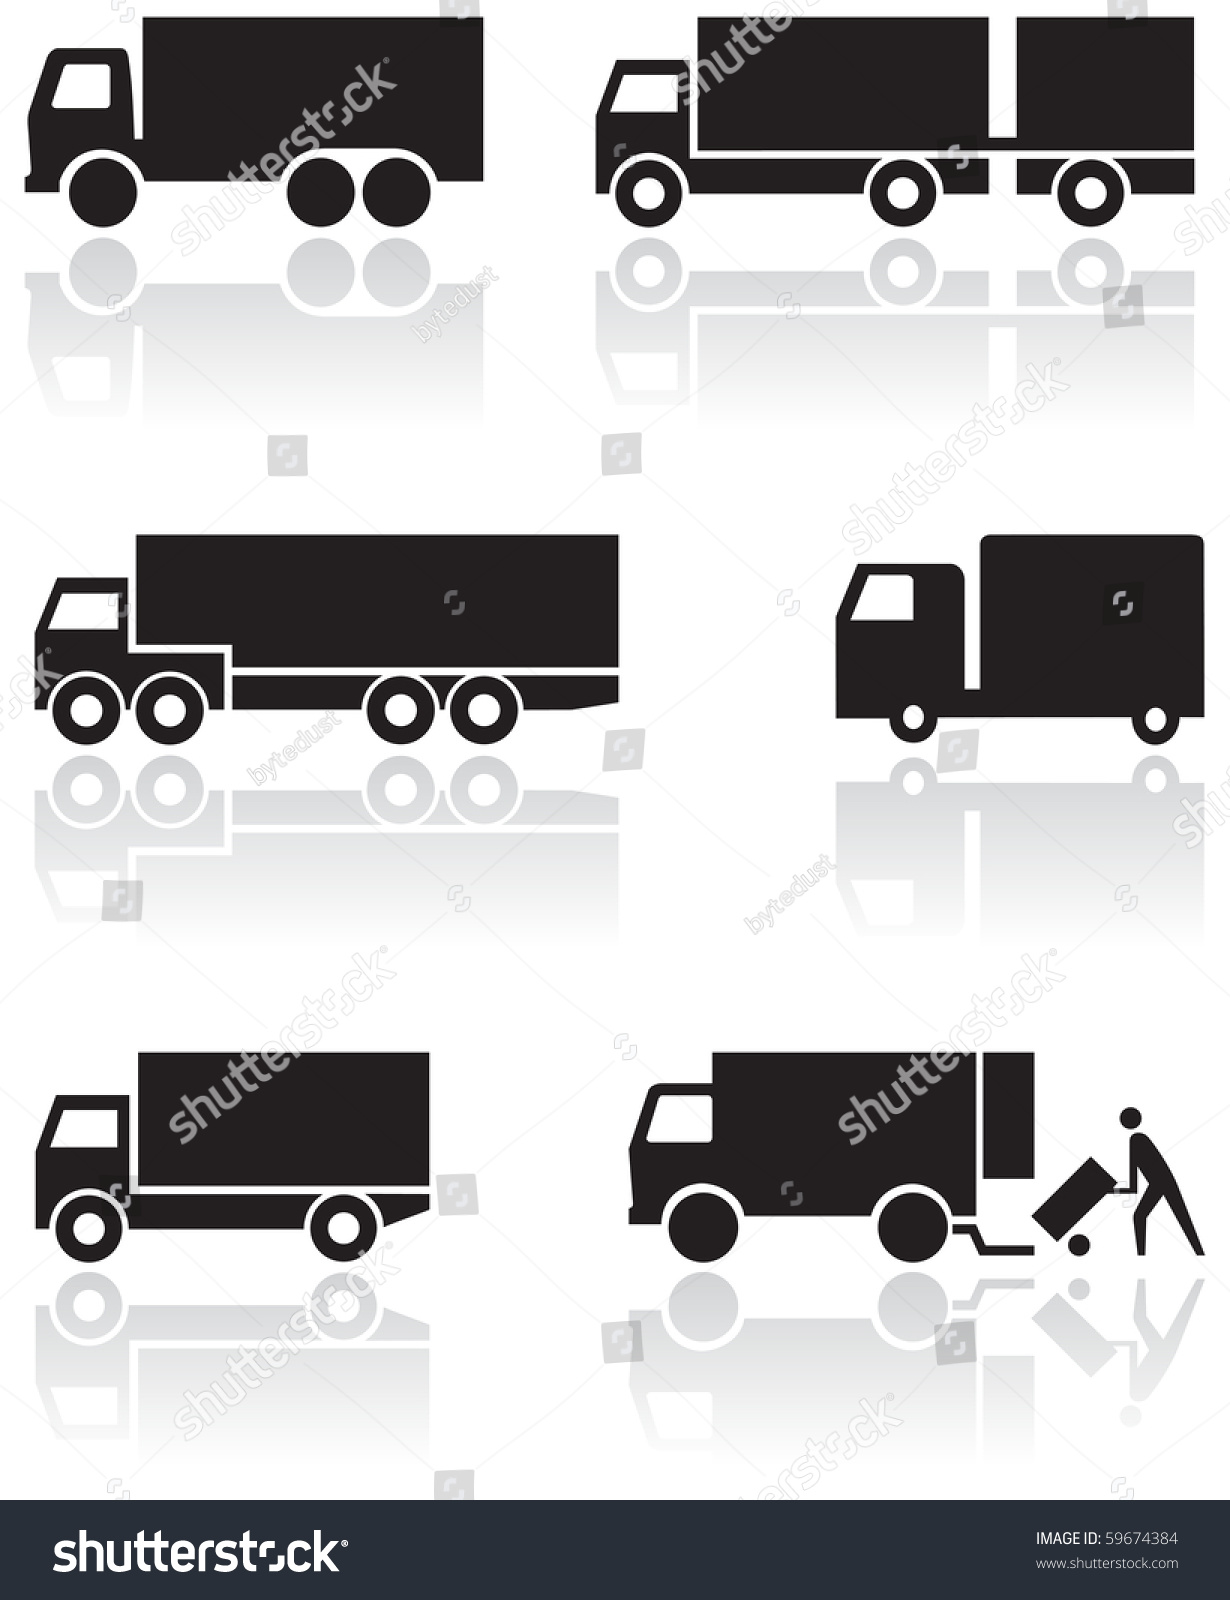 Vector Set Of Different Truck Symbols. All Vector Objects Are ...